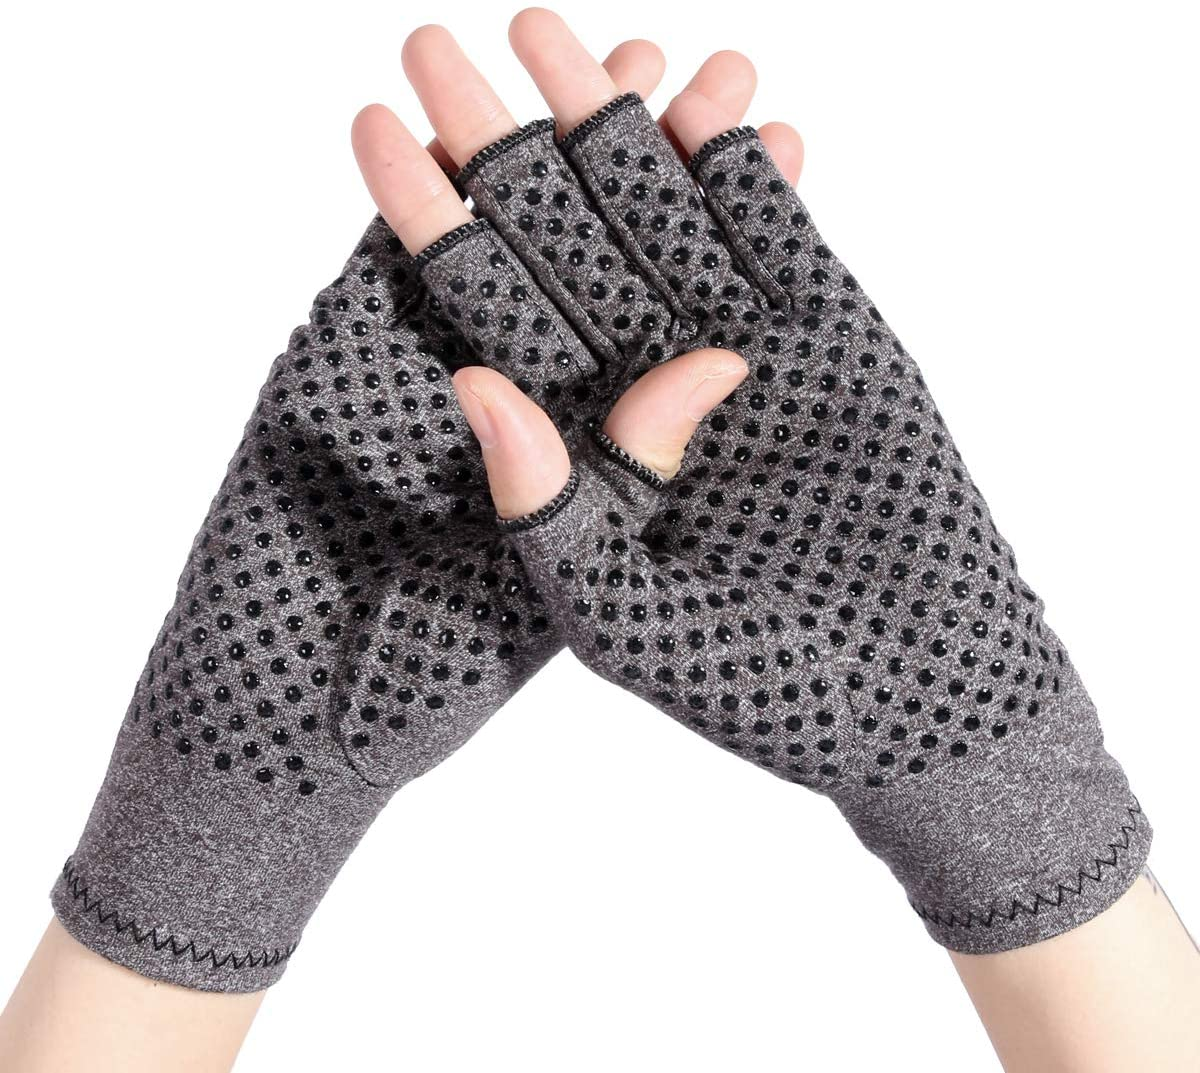 Kangwell Arthritis Compression Gloves (1-Pairs) | Ease Muscle Tension, Joint Pain Relief-Carpal Tunnel Support, Fingerless Compression Arthritis Gloves for Men & Women (Gray-Gel, S)